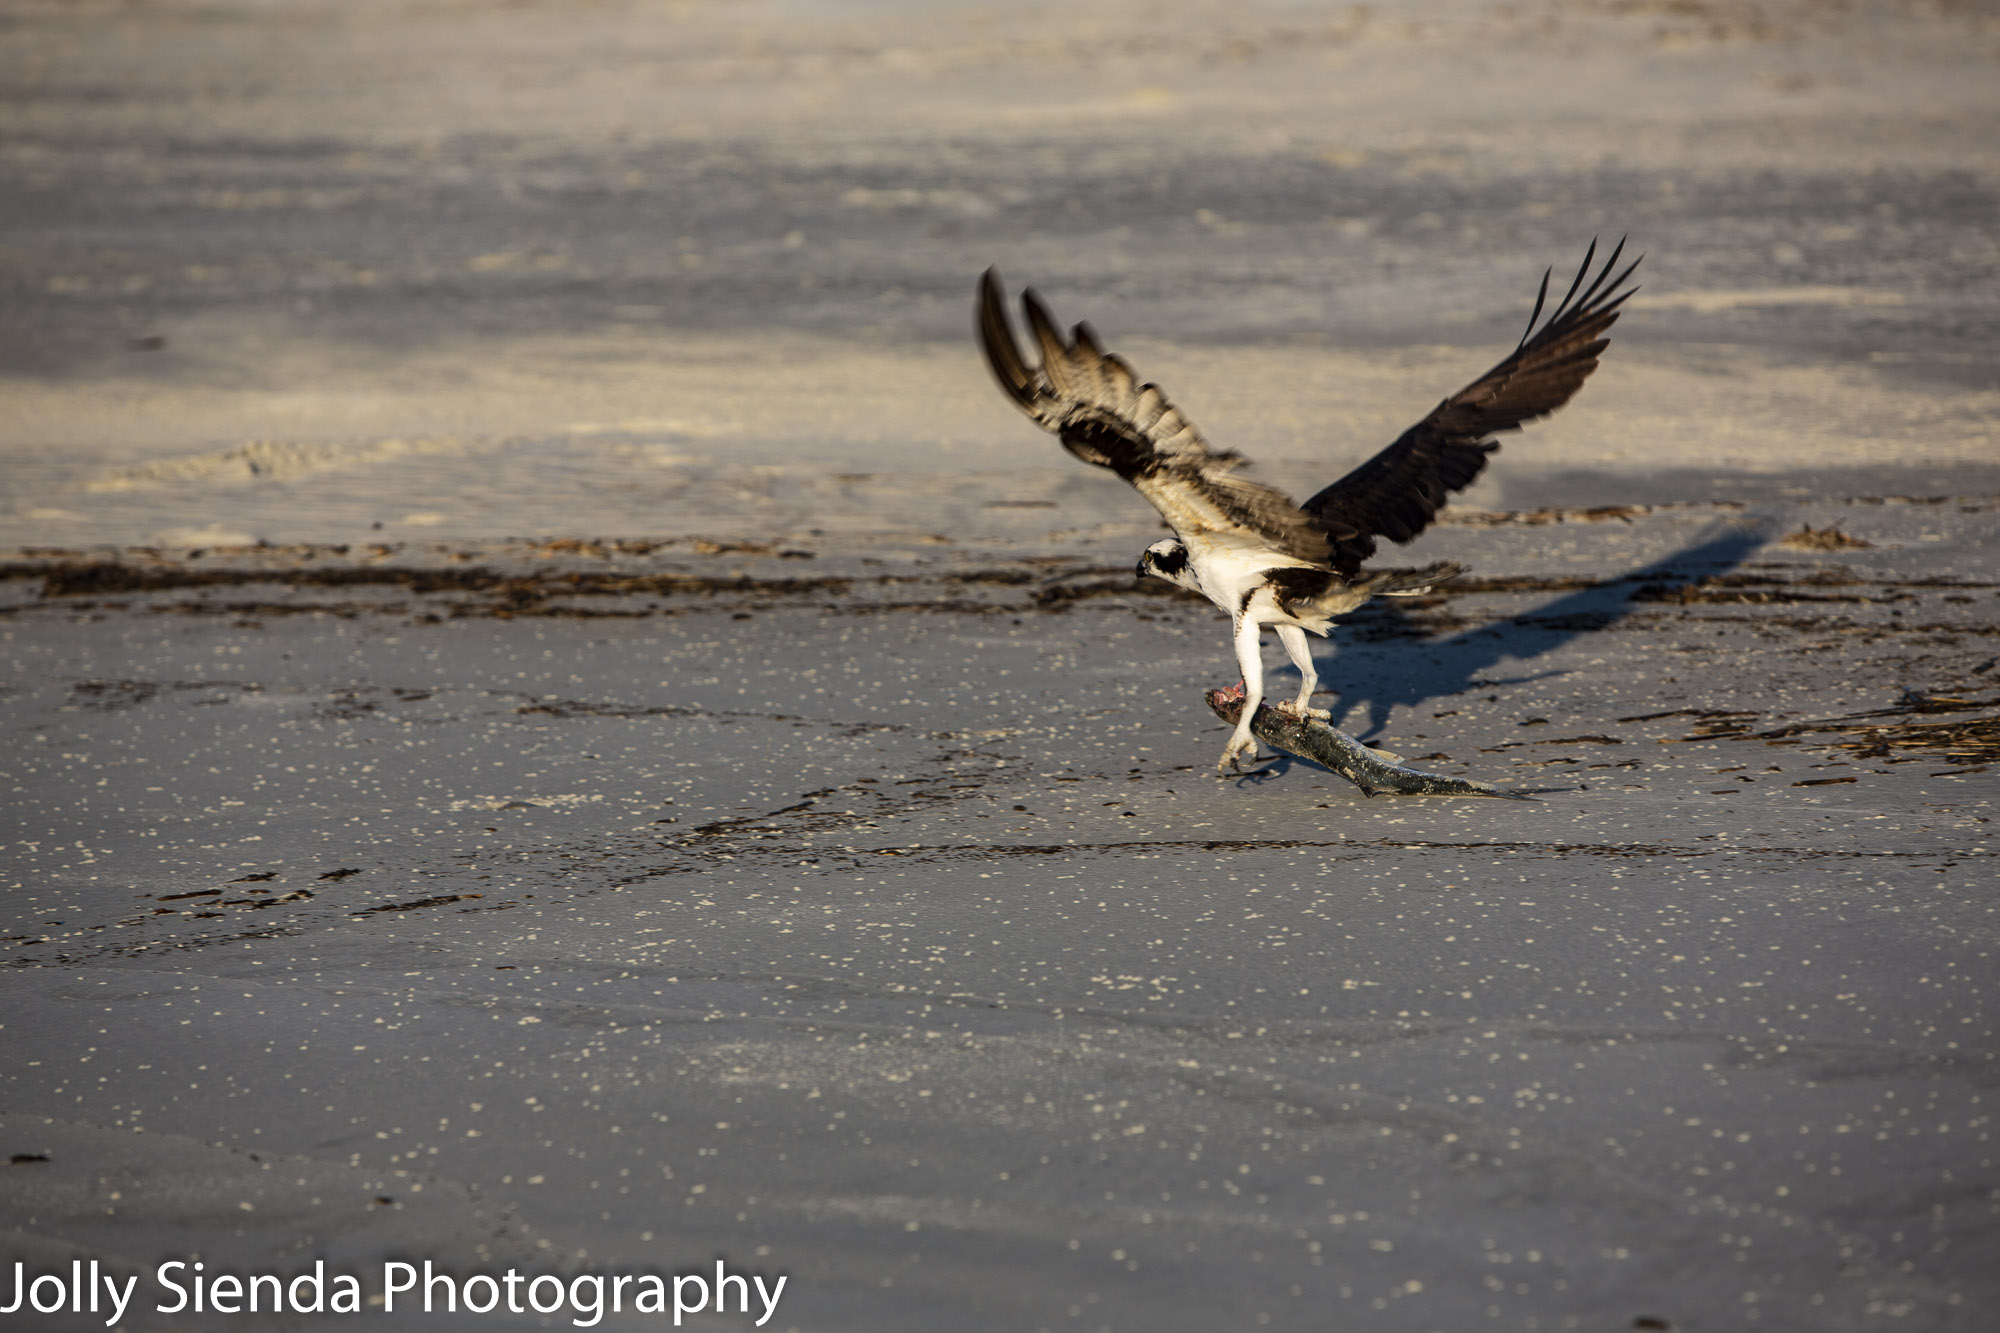 Osprey with the catch of the day! The Osprey hold the fish in his talons and takes off from the beach.